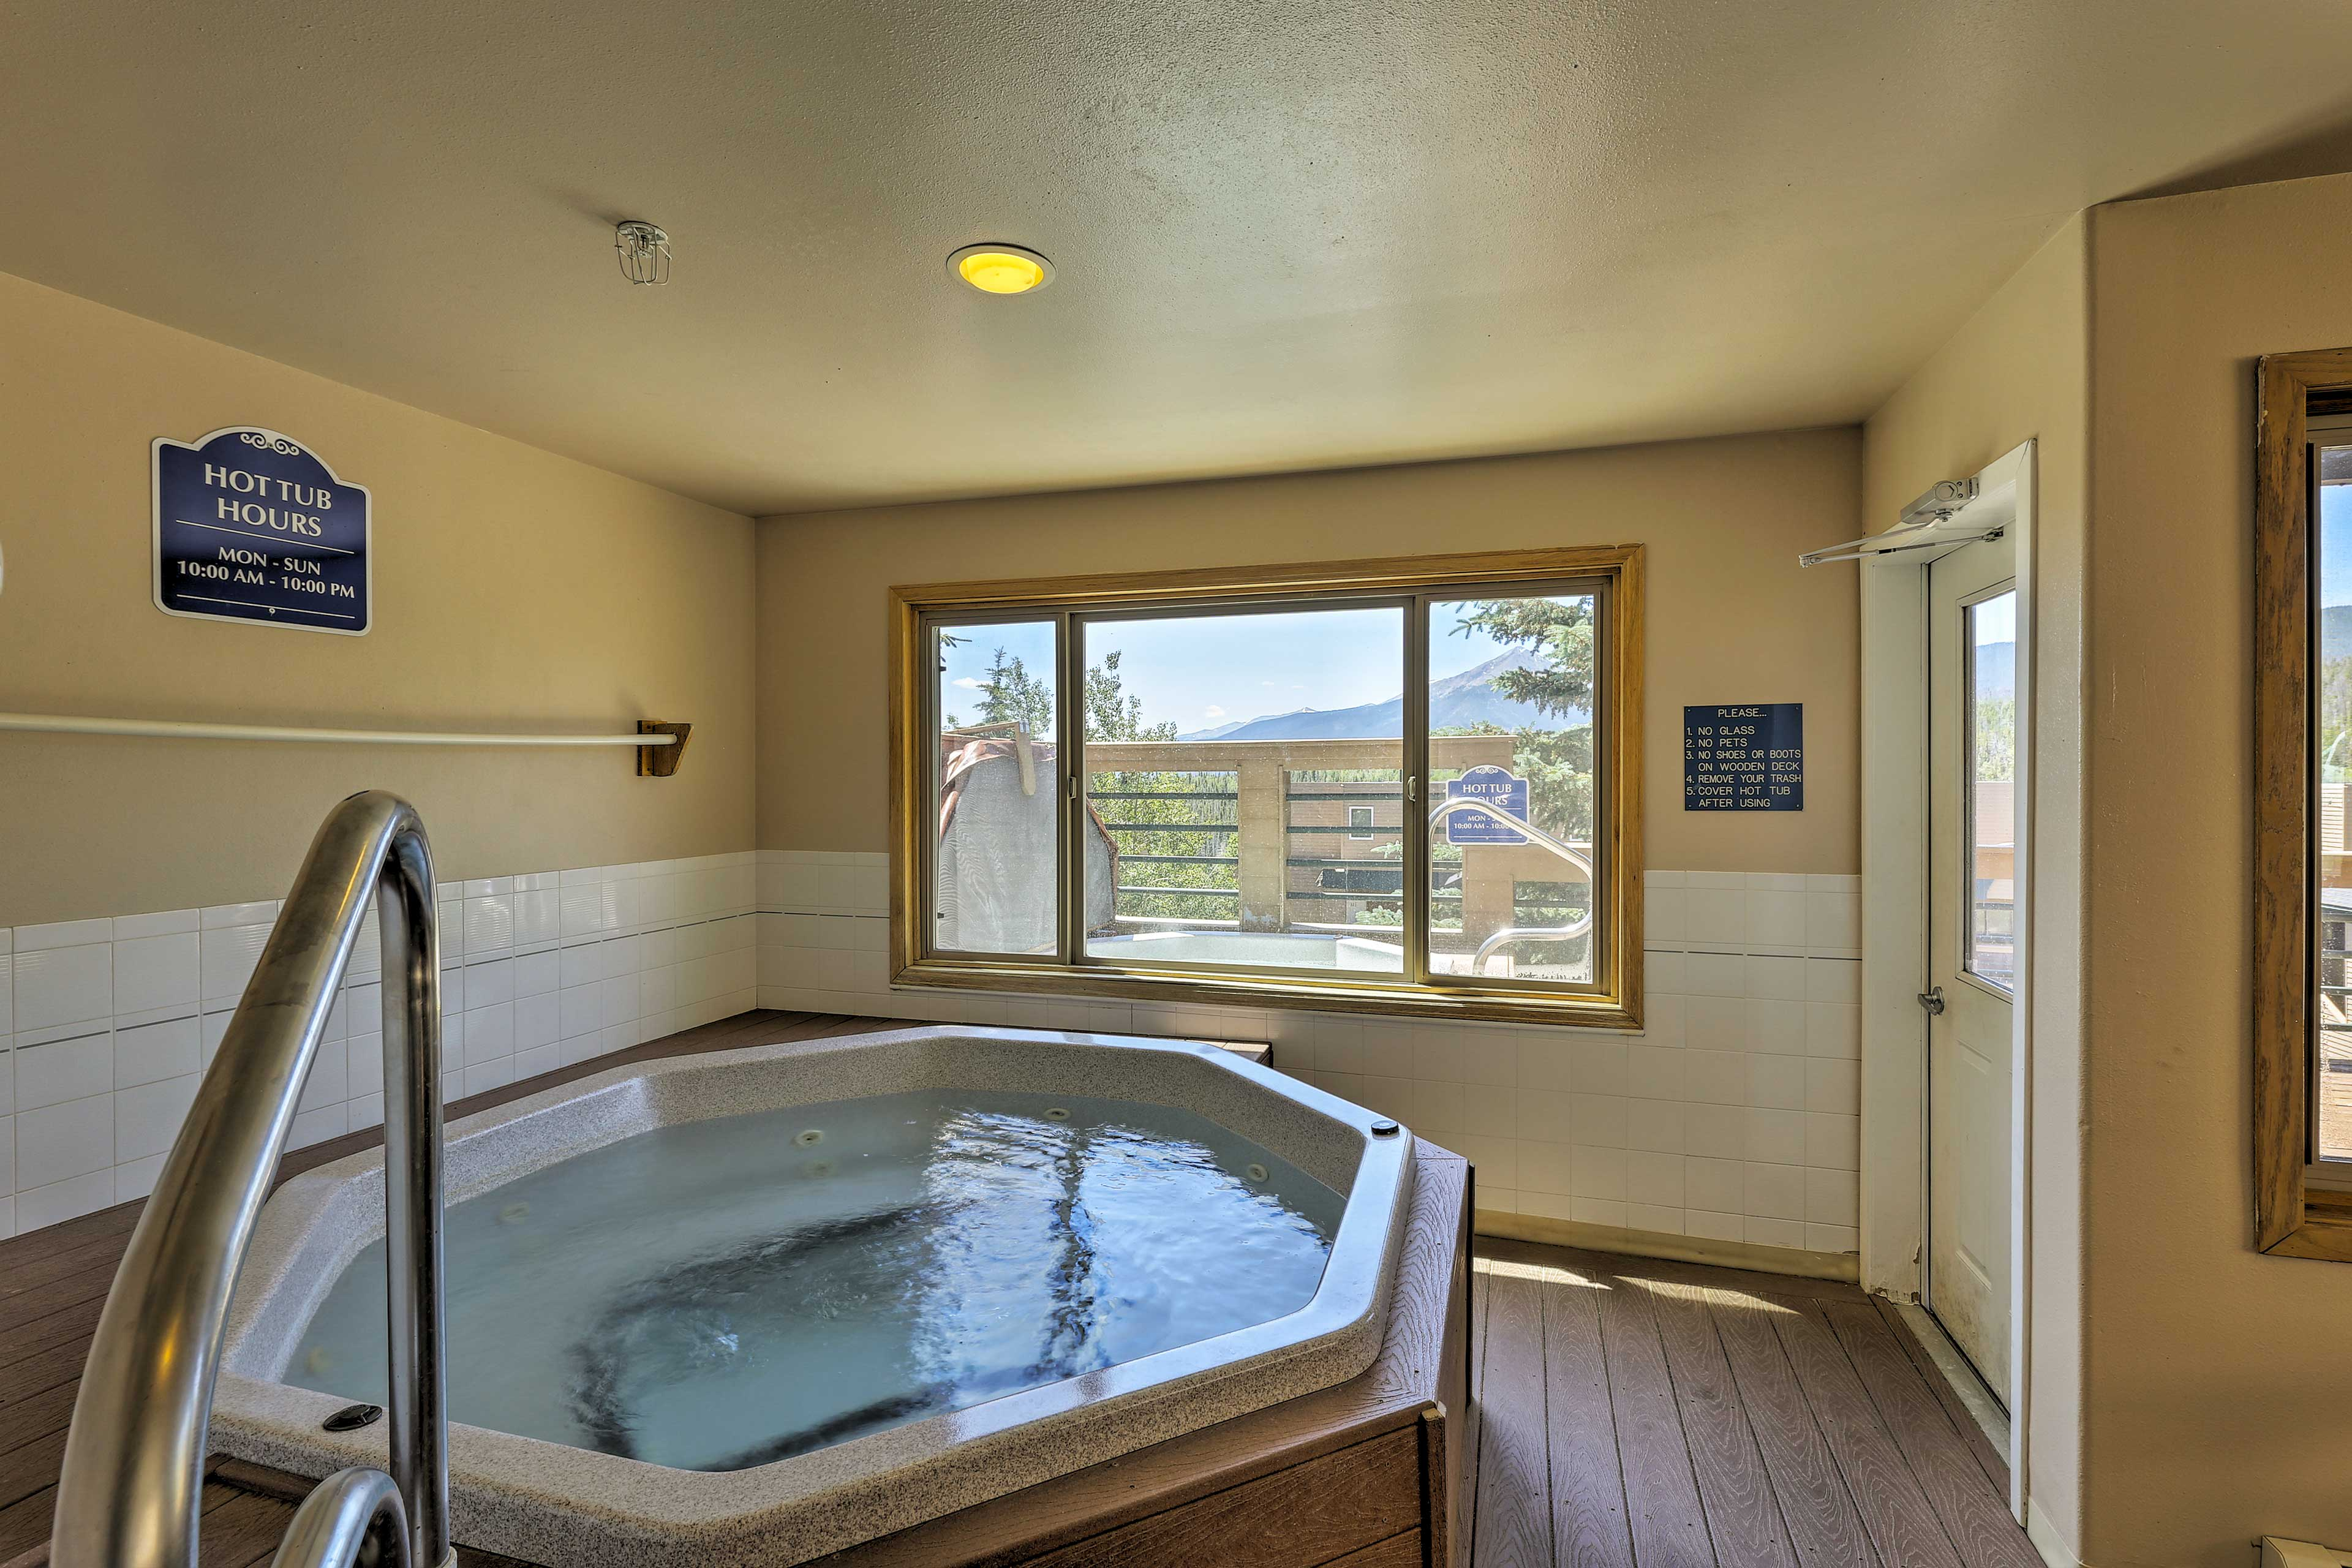 This complex features both an indoor and outdoor hot tub.